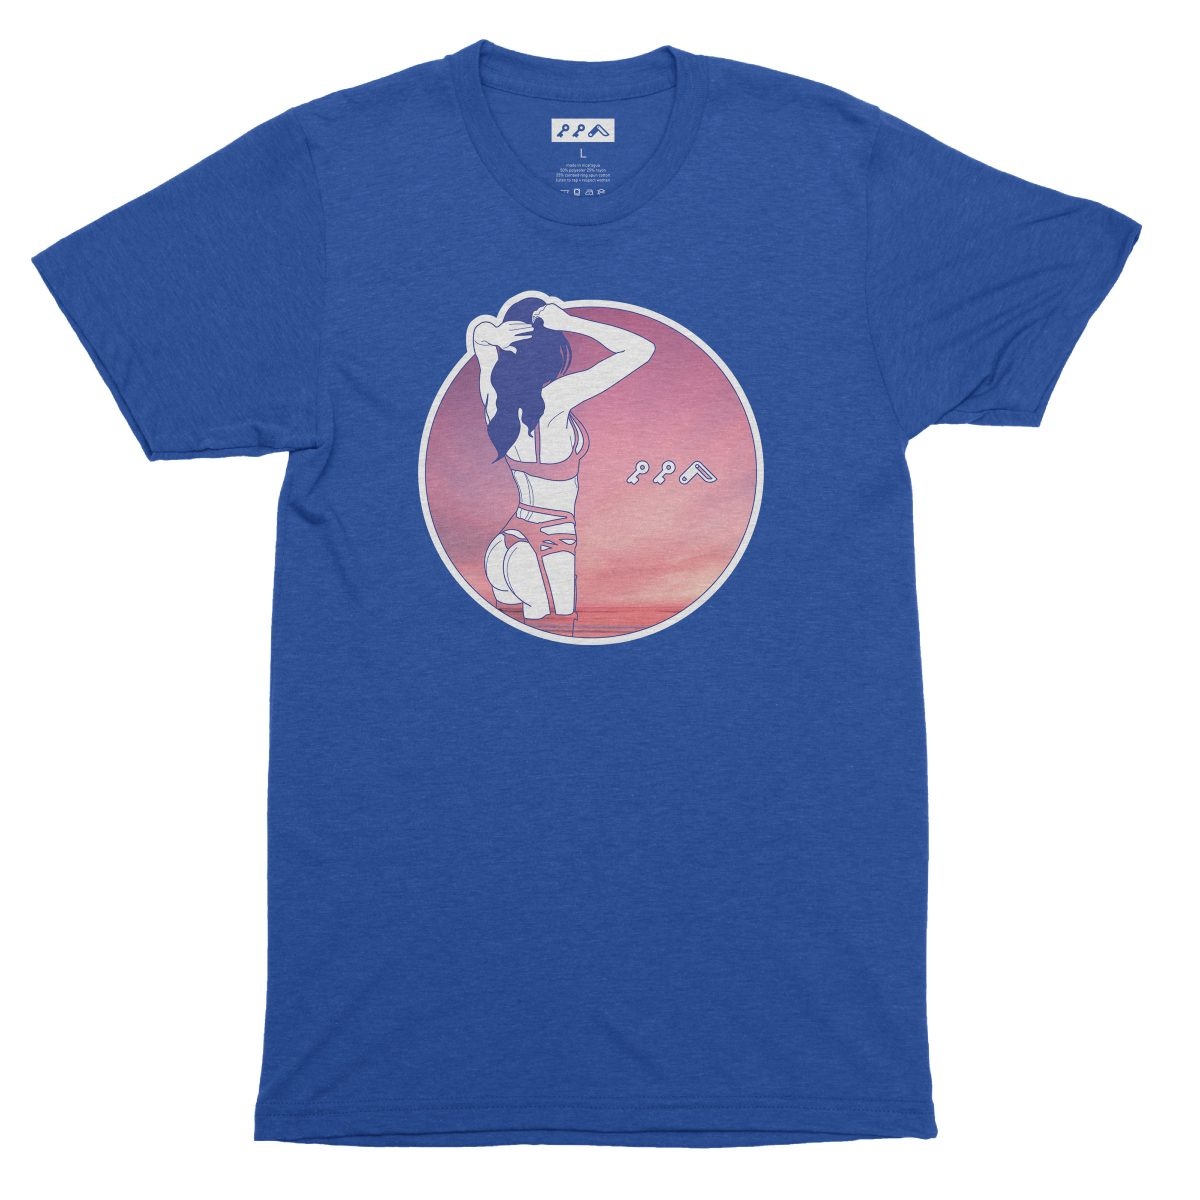 """""""NIGHT MOVES"""" sexy music festival graphic tee in dodger blue"""